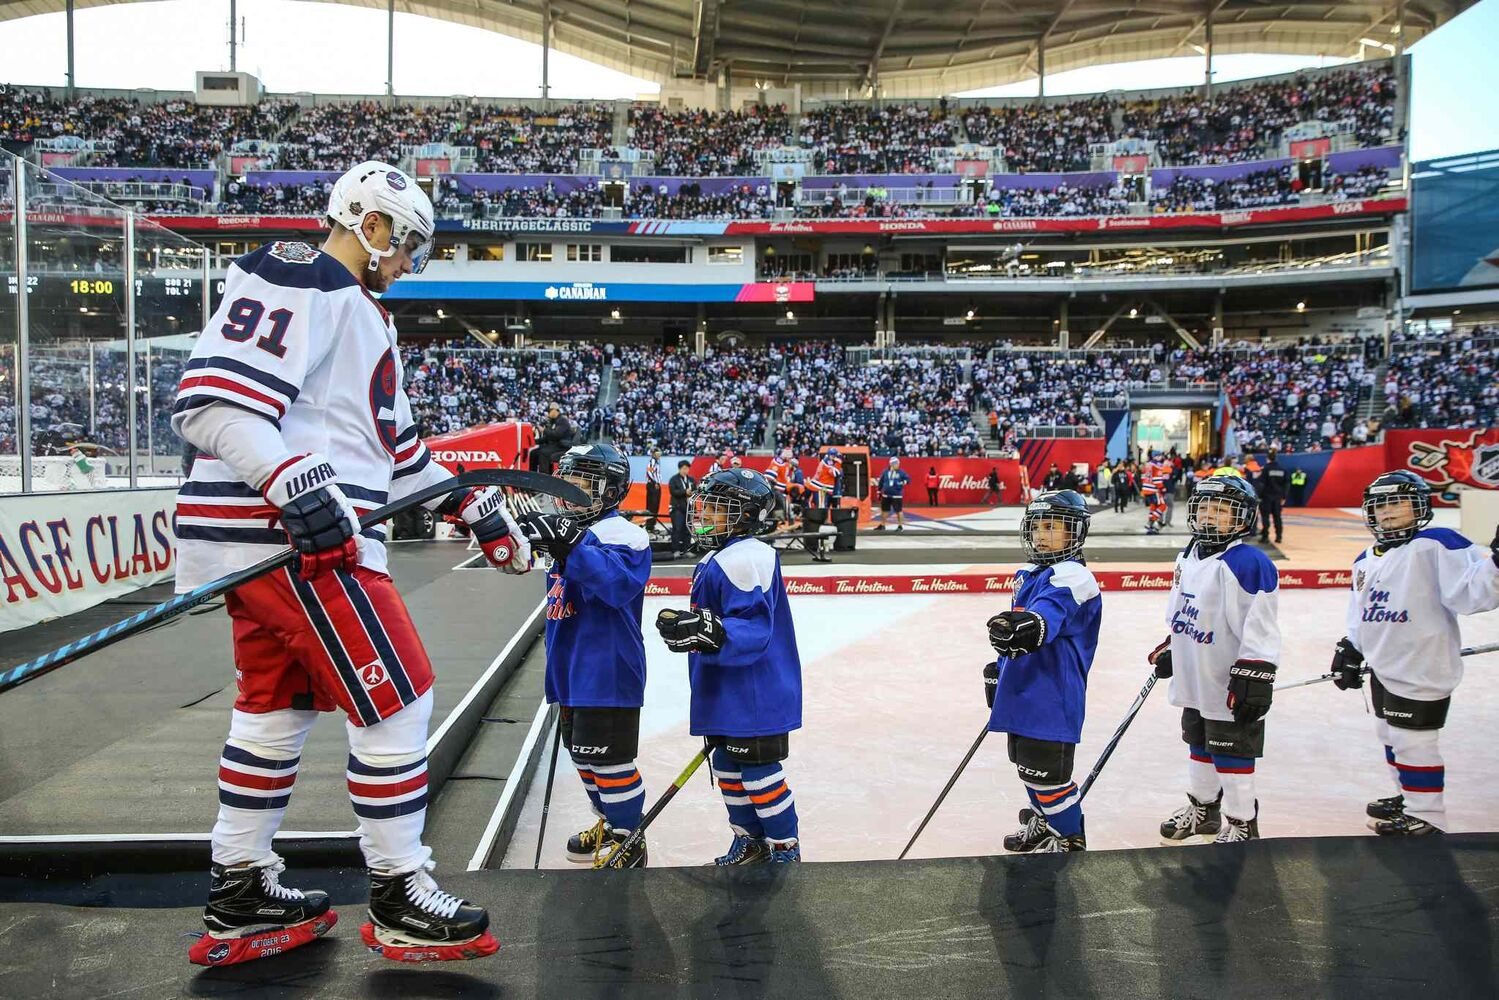 The Winnipeg Jets' Alexander Burmistrov (91) leaves the ice for the second period intermission during a NHL game against the Edmonton Oilers at Investors Group Field.  (MIKE DEAL / WINNIPEG FREE PRESS)